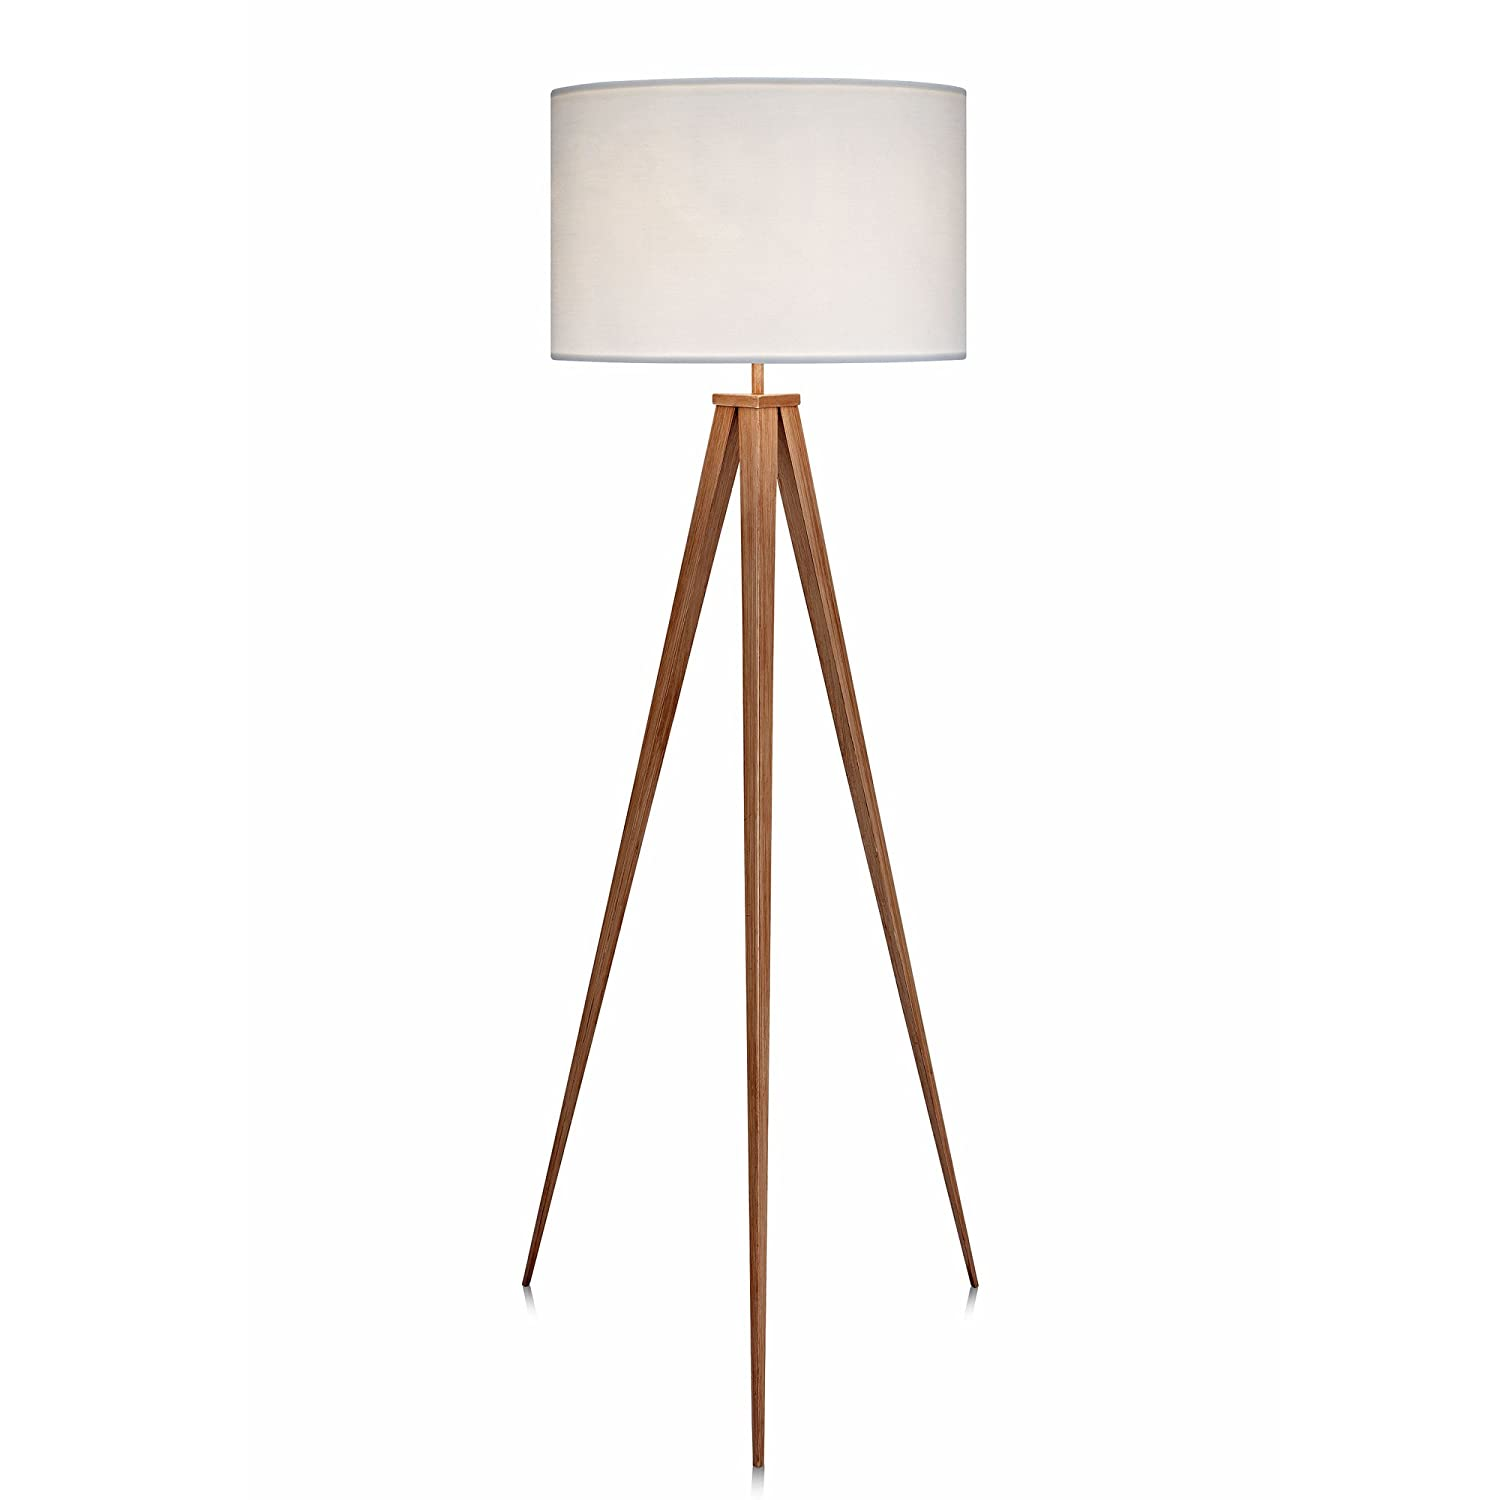 modern wood tripod design floor a home lamp from styles to ideas vintage